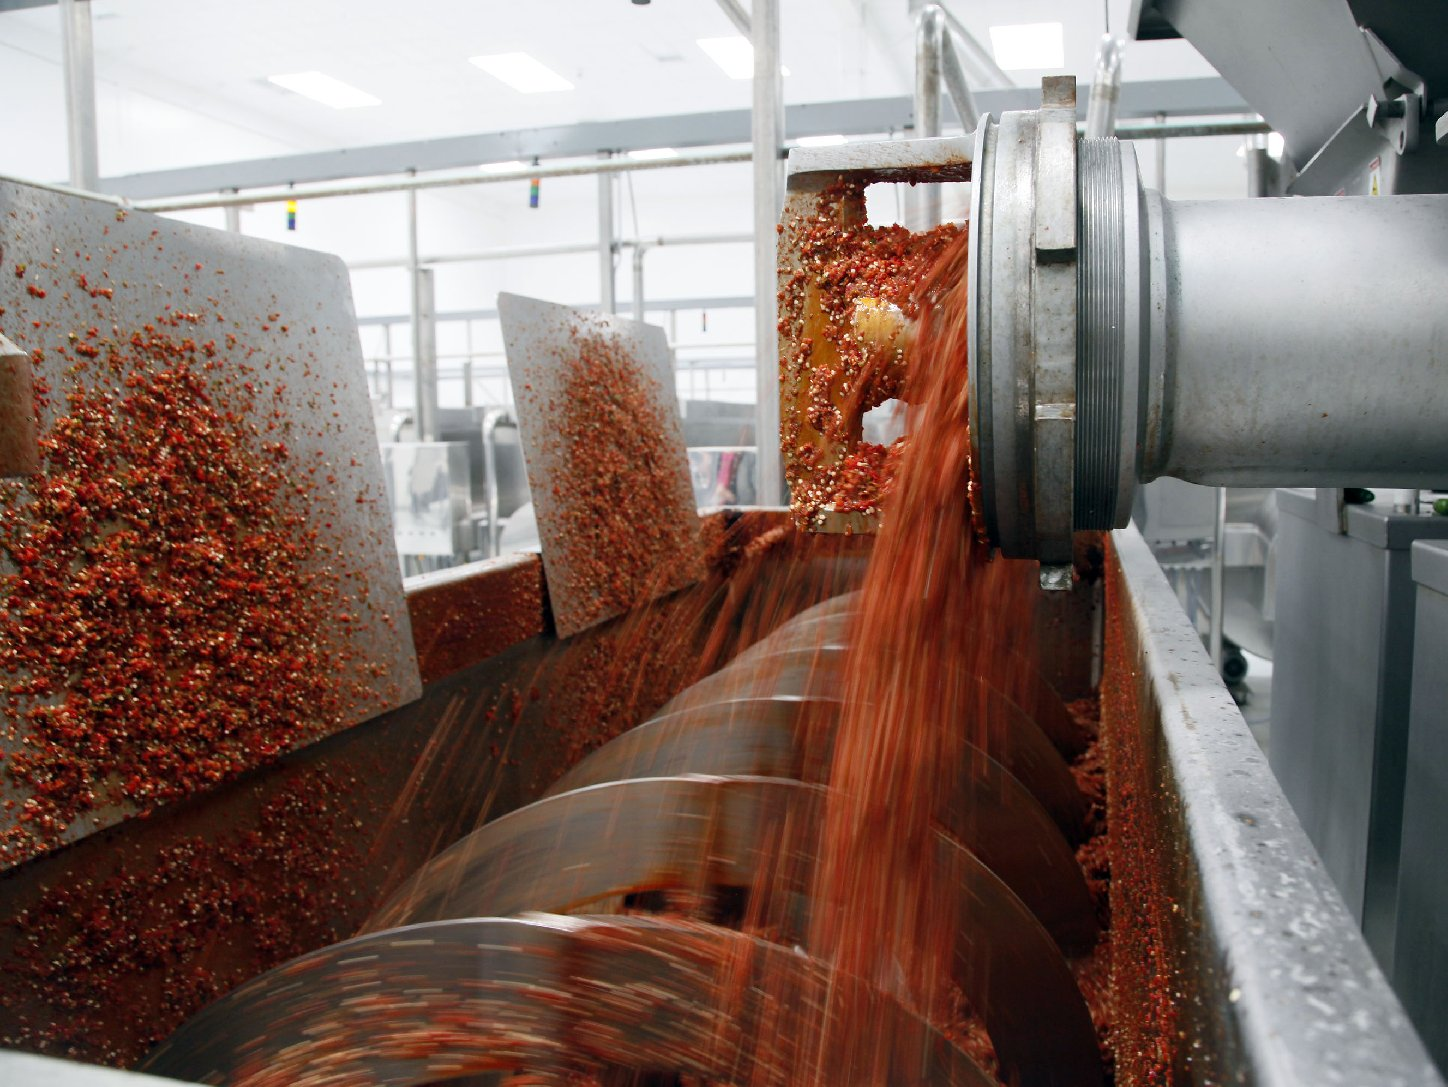 All heat and spice inside the Huy Fong Foods grinding rooms. Photo: Nick Ut/ASSOCIATED PRESS